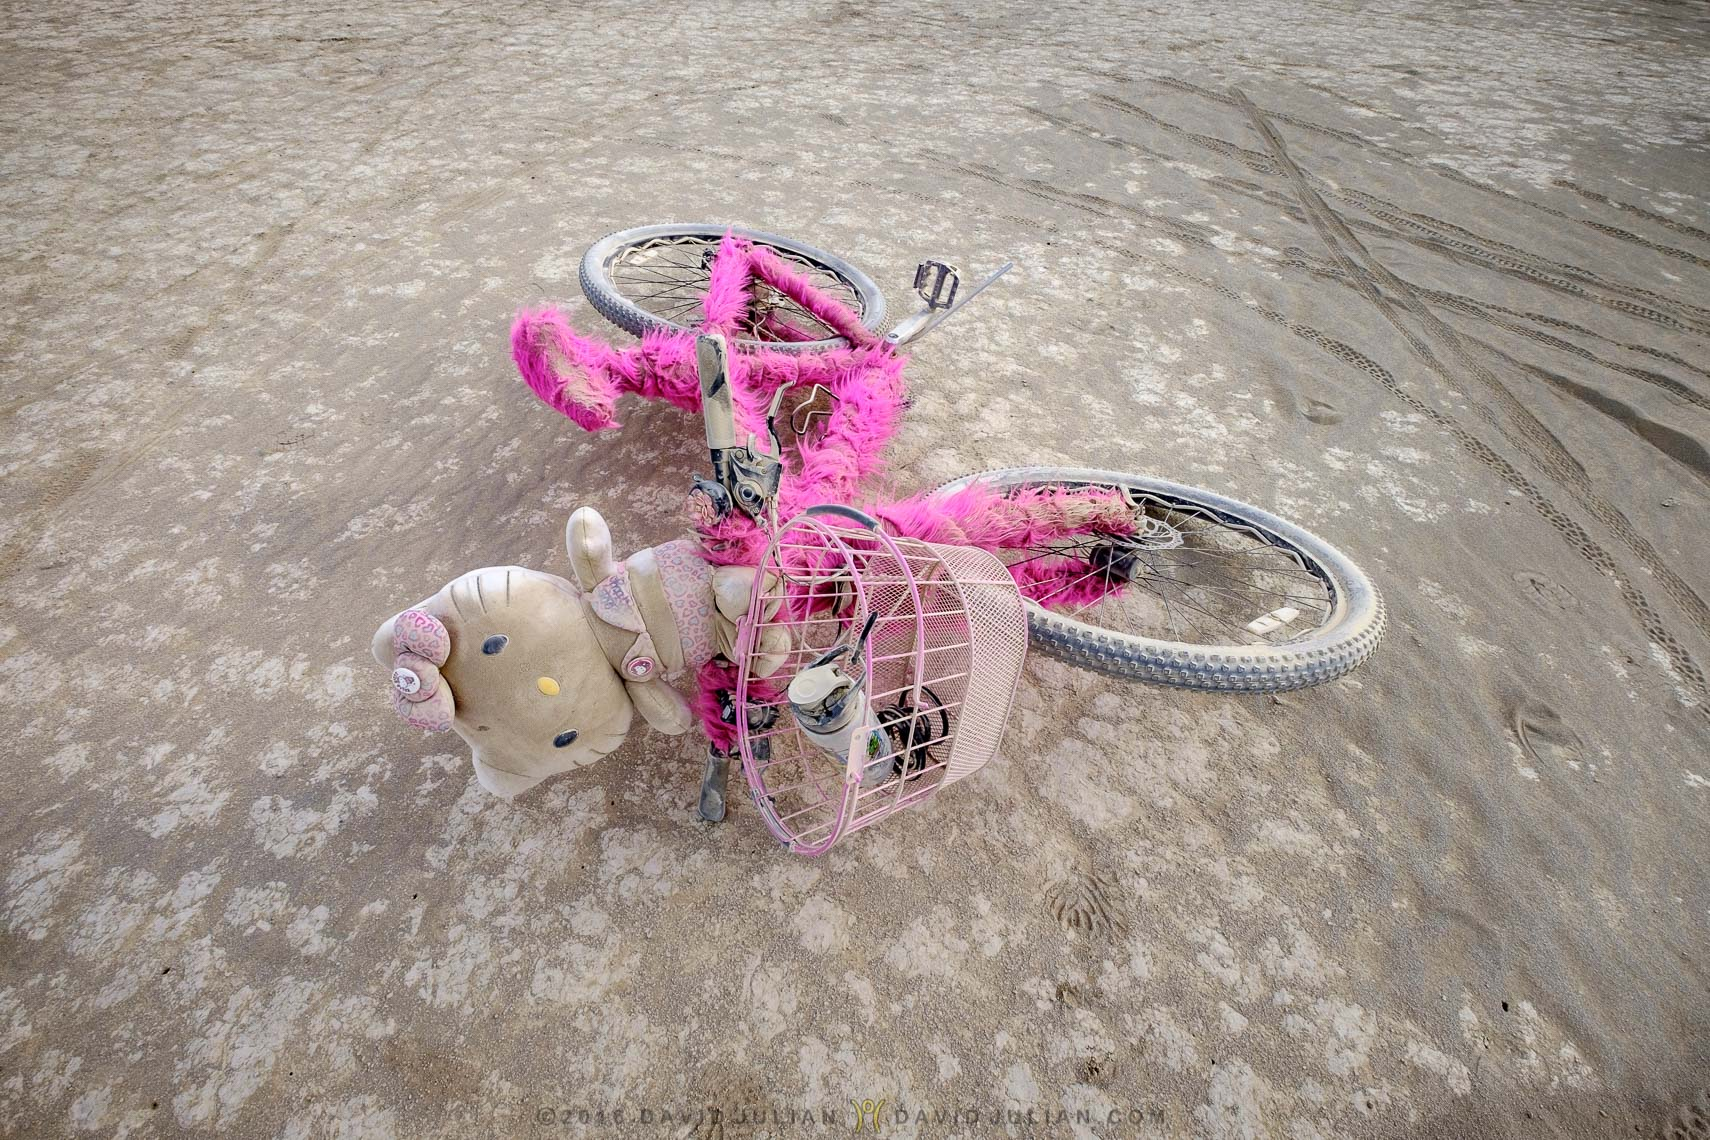 Abandoned Hello Kitty bike in deep playa-